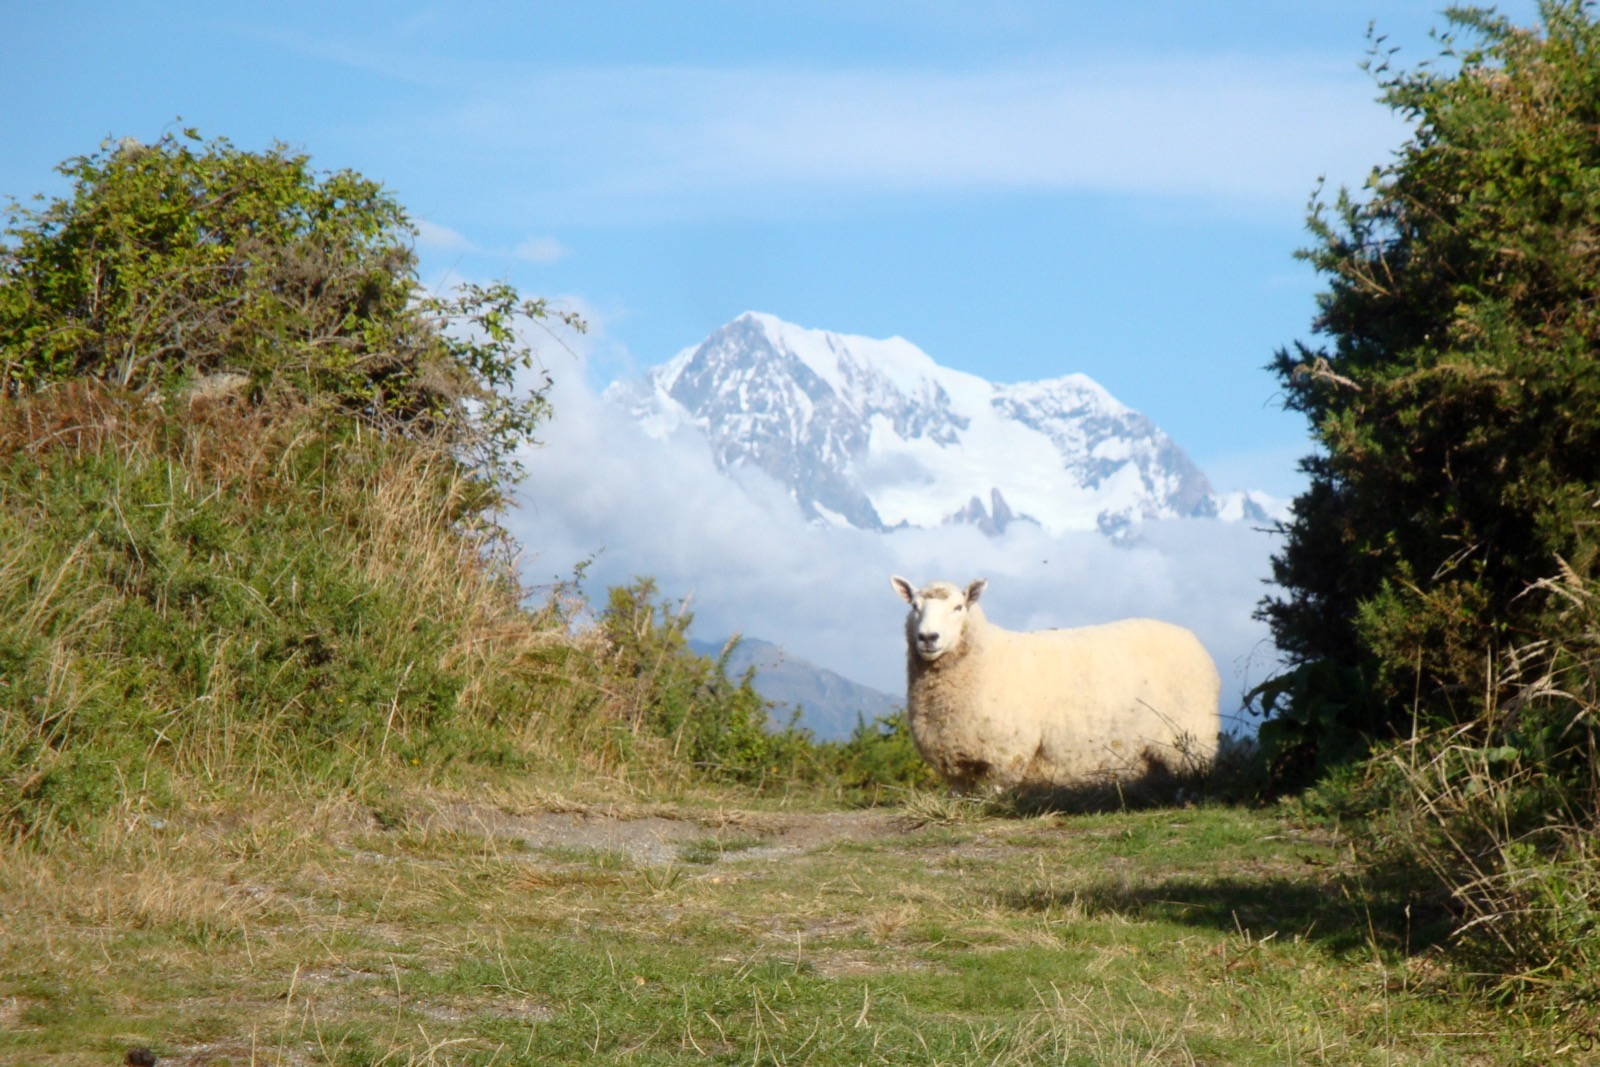 It's very common to cross paths with sheep in New Zealand.